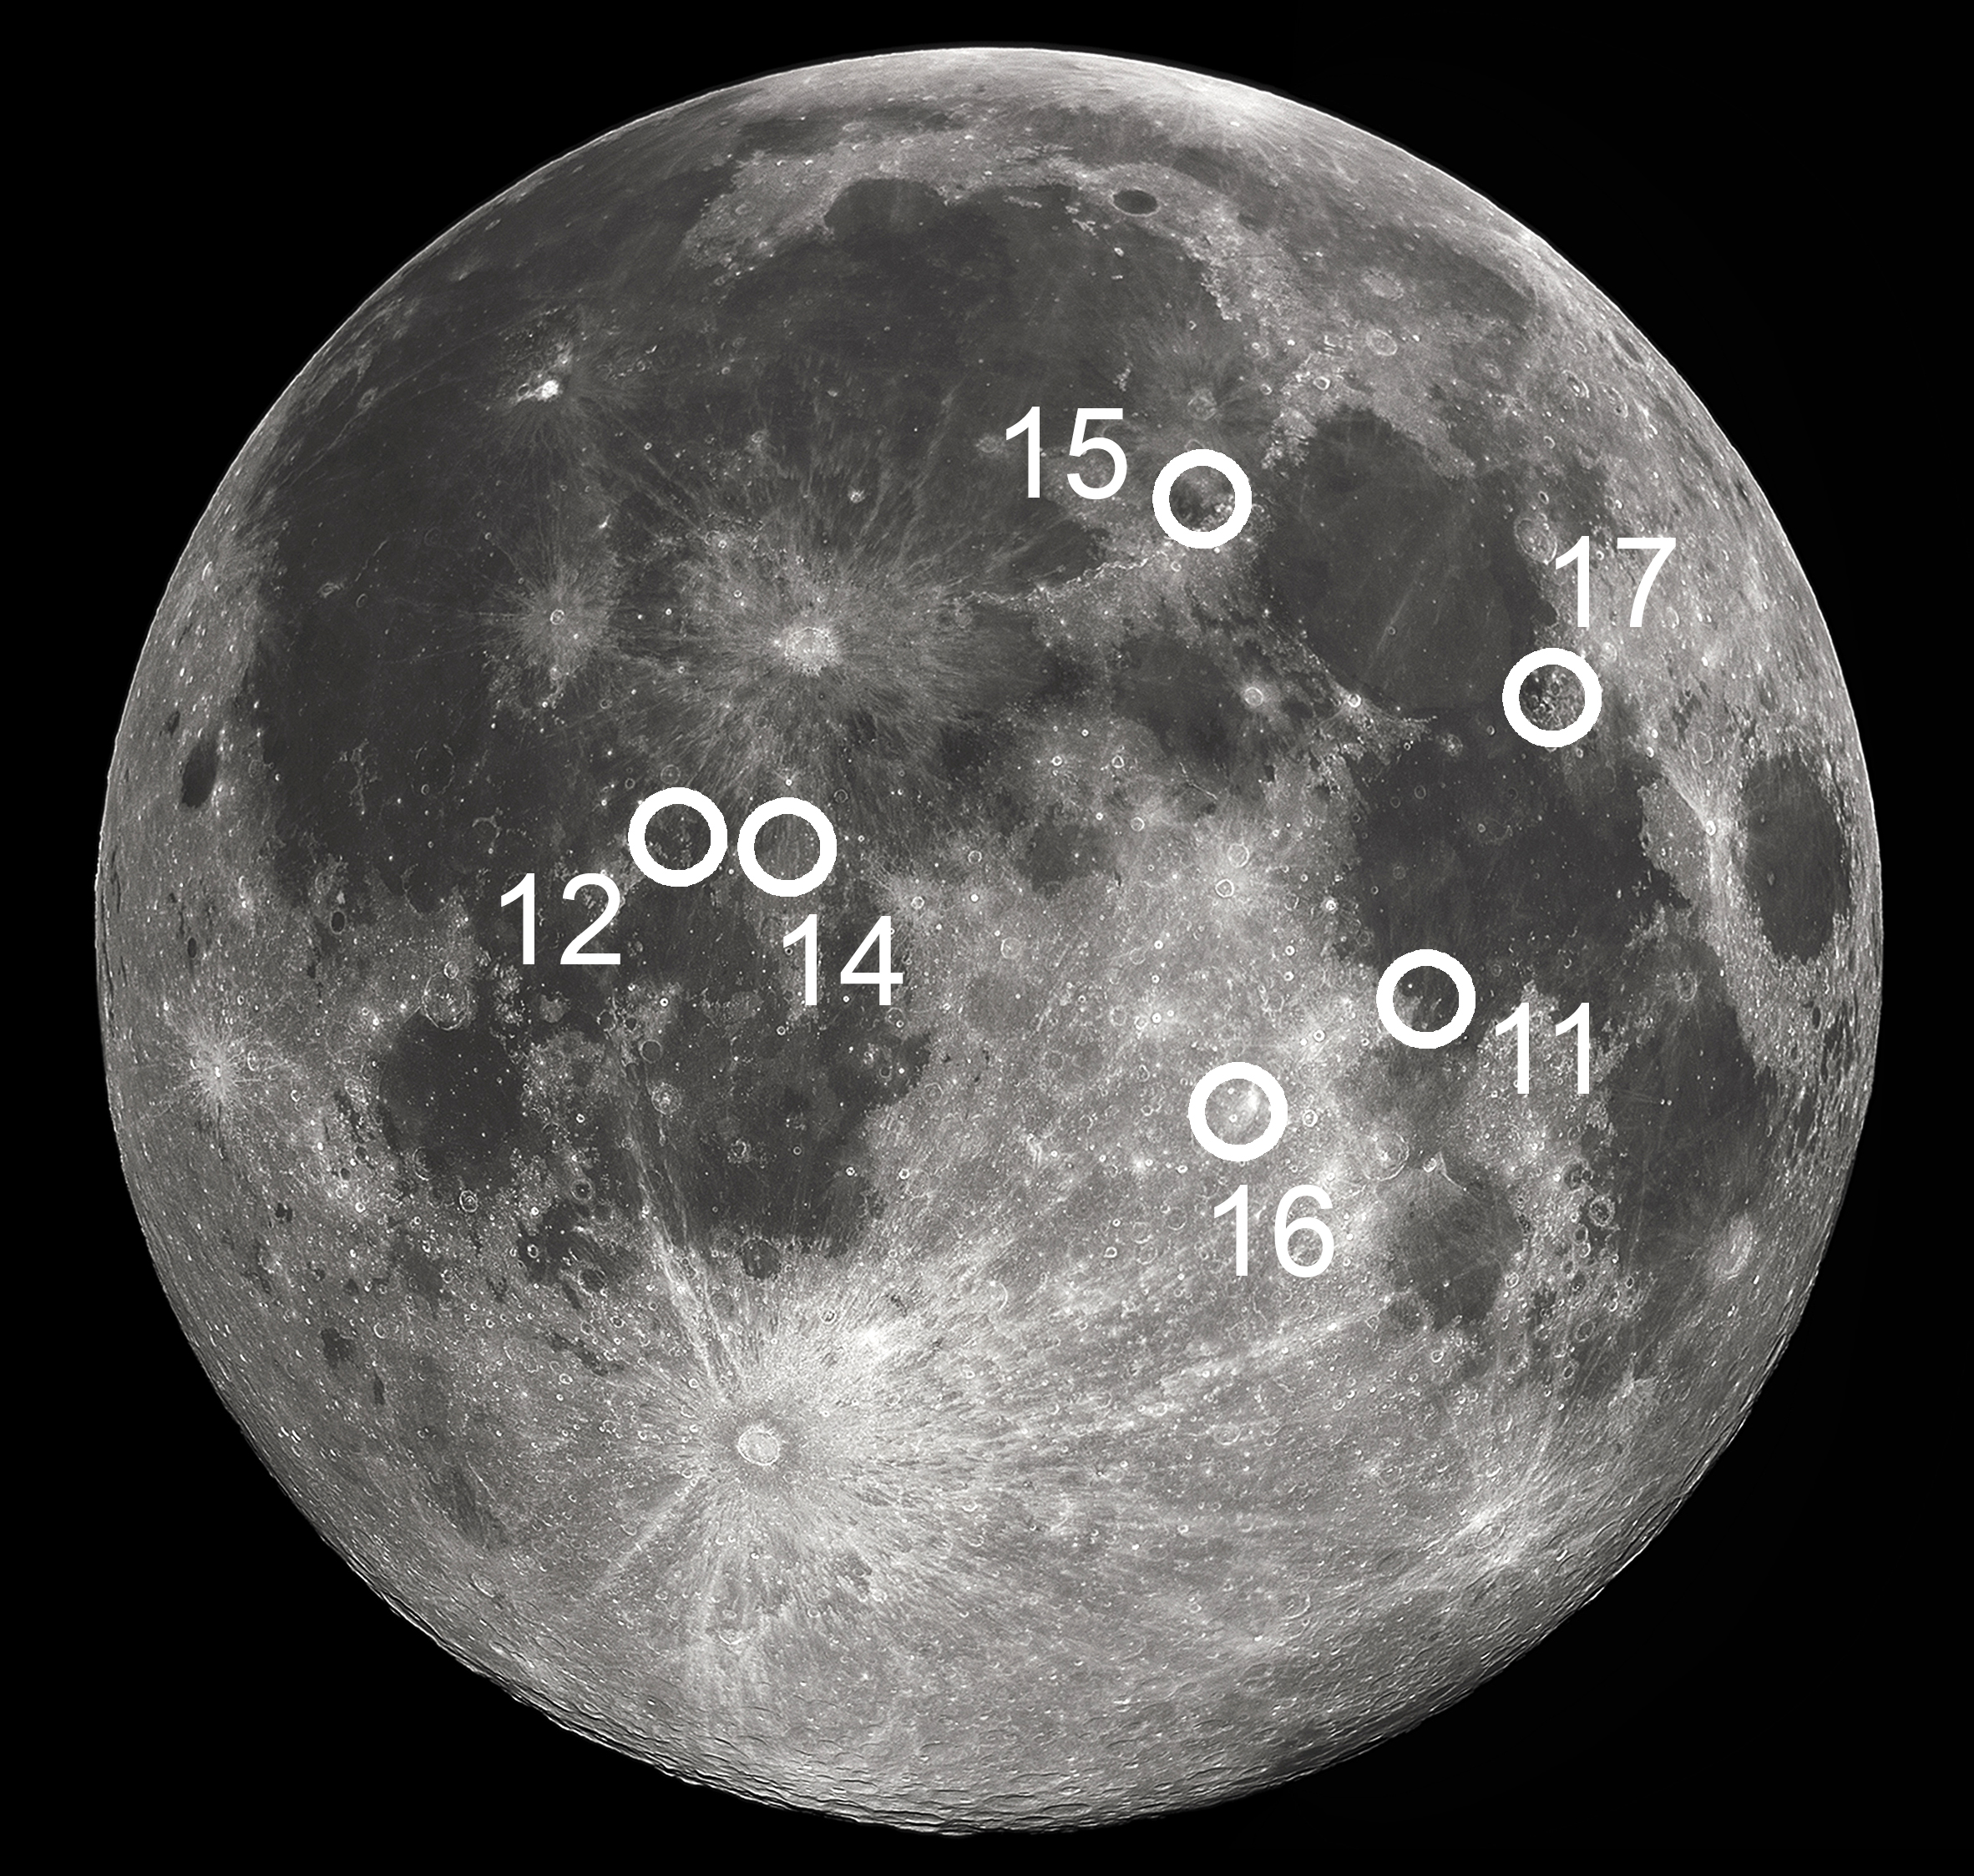 File:Apollo landing sites.jpg - Wikimedia Commons